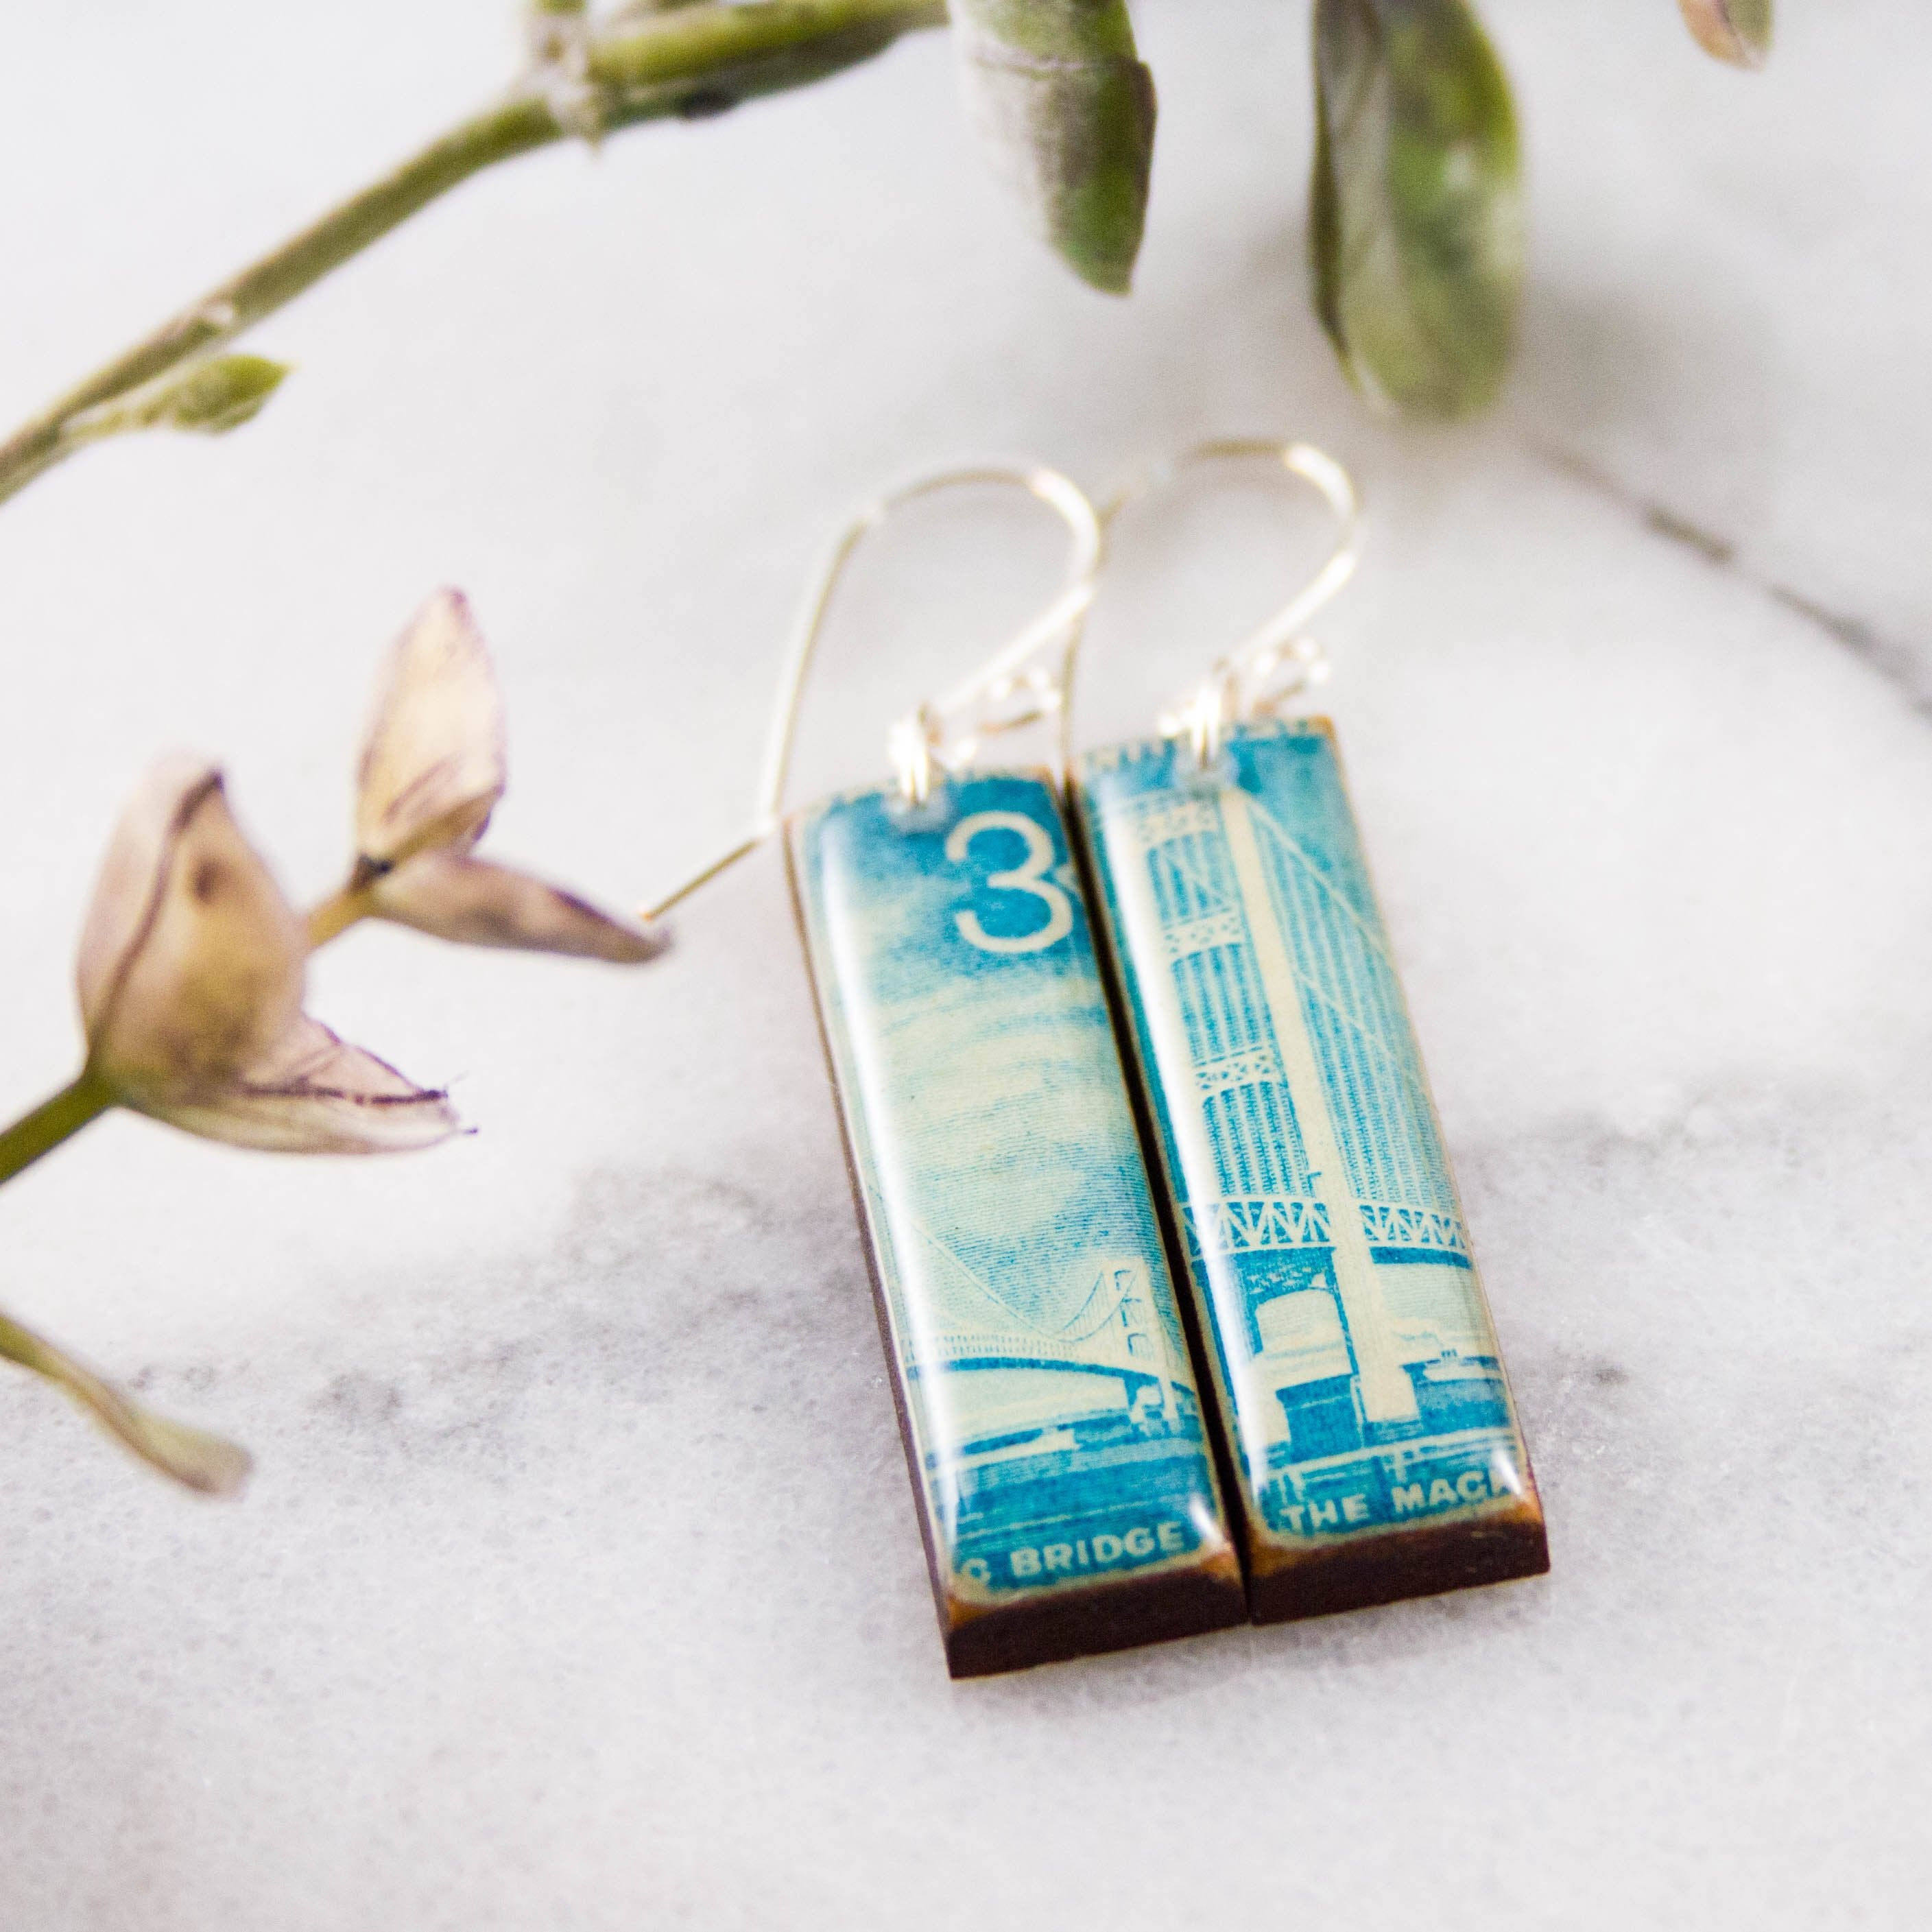 MICHIGAN- Mackinac Bridge Vintage Postage Stamp Earrings